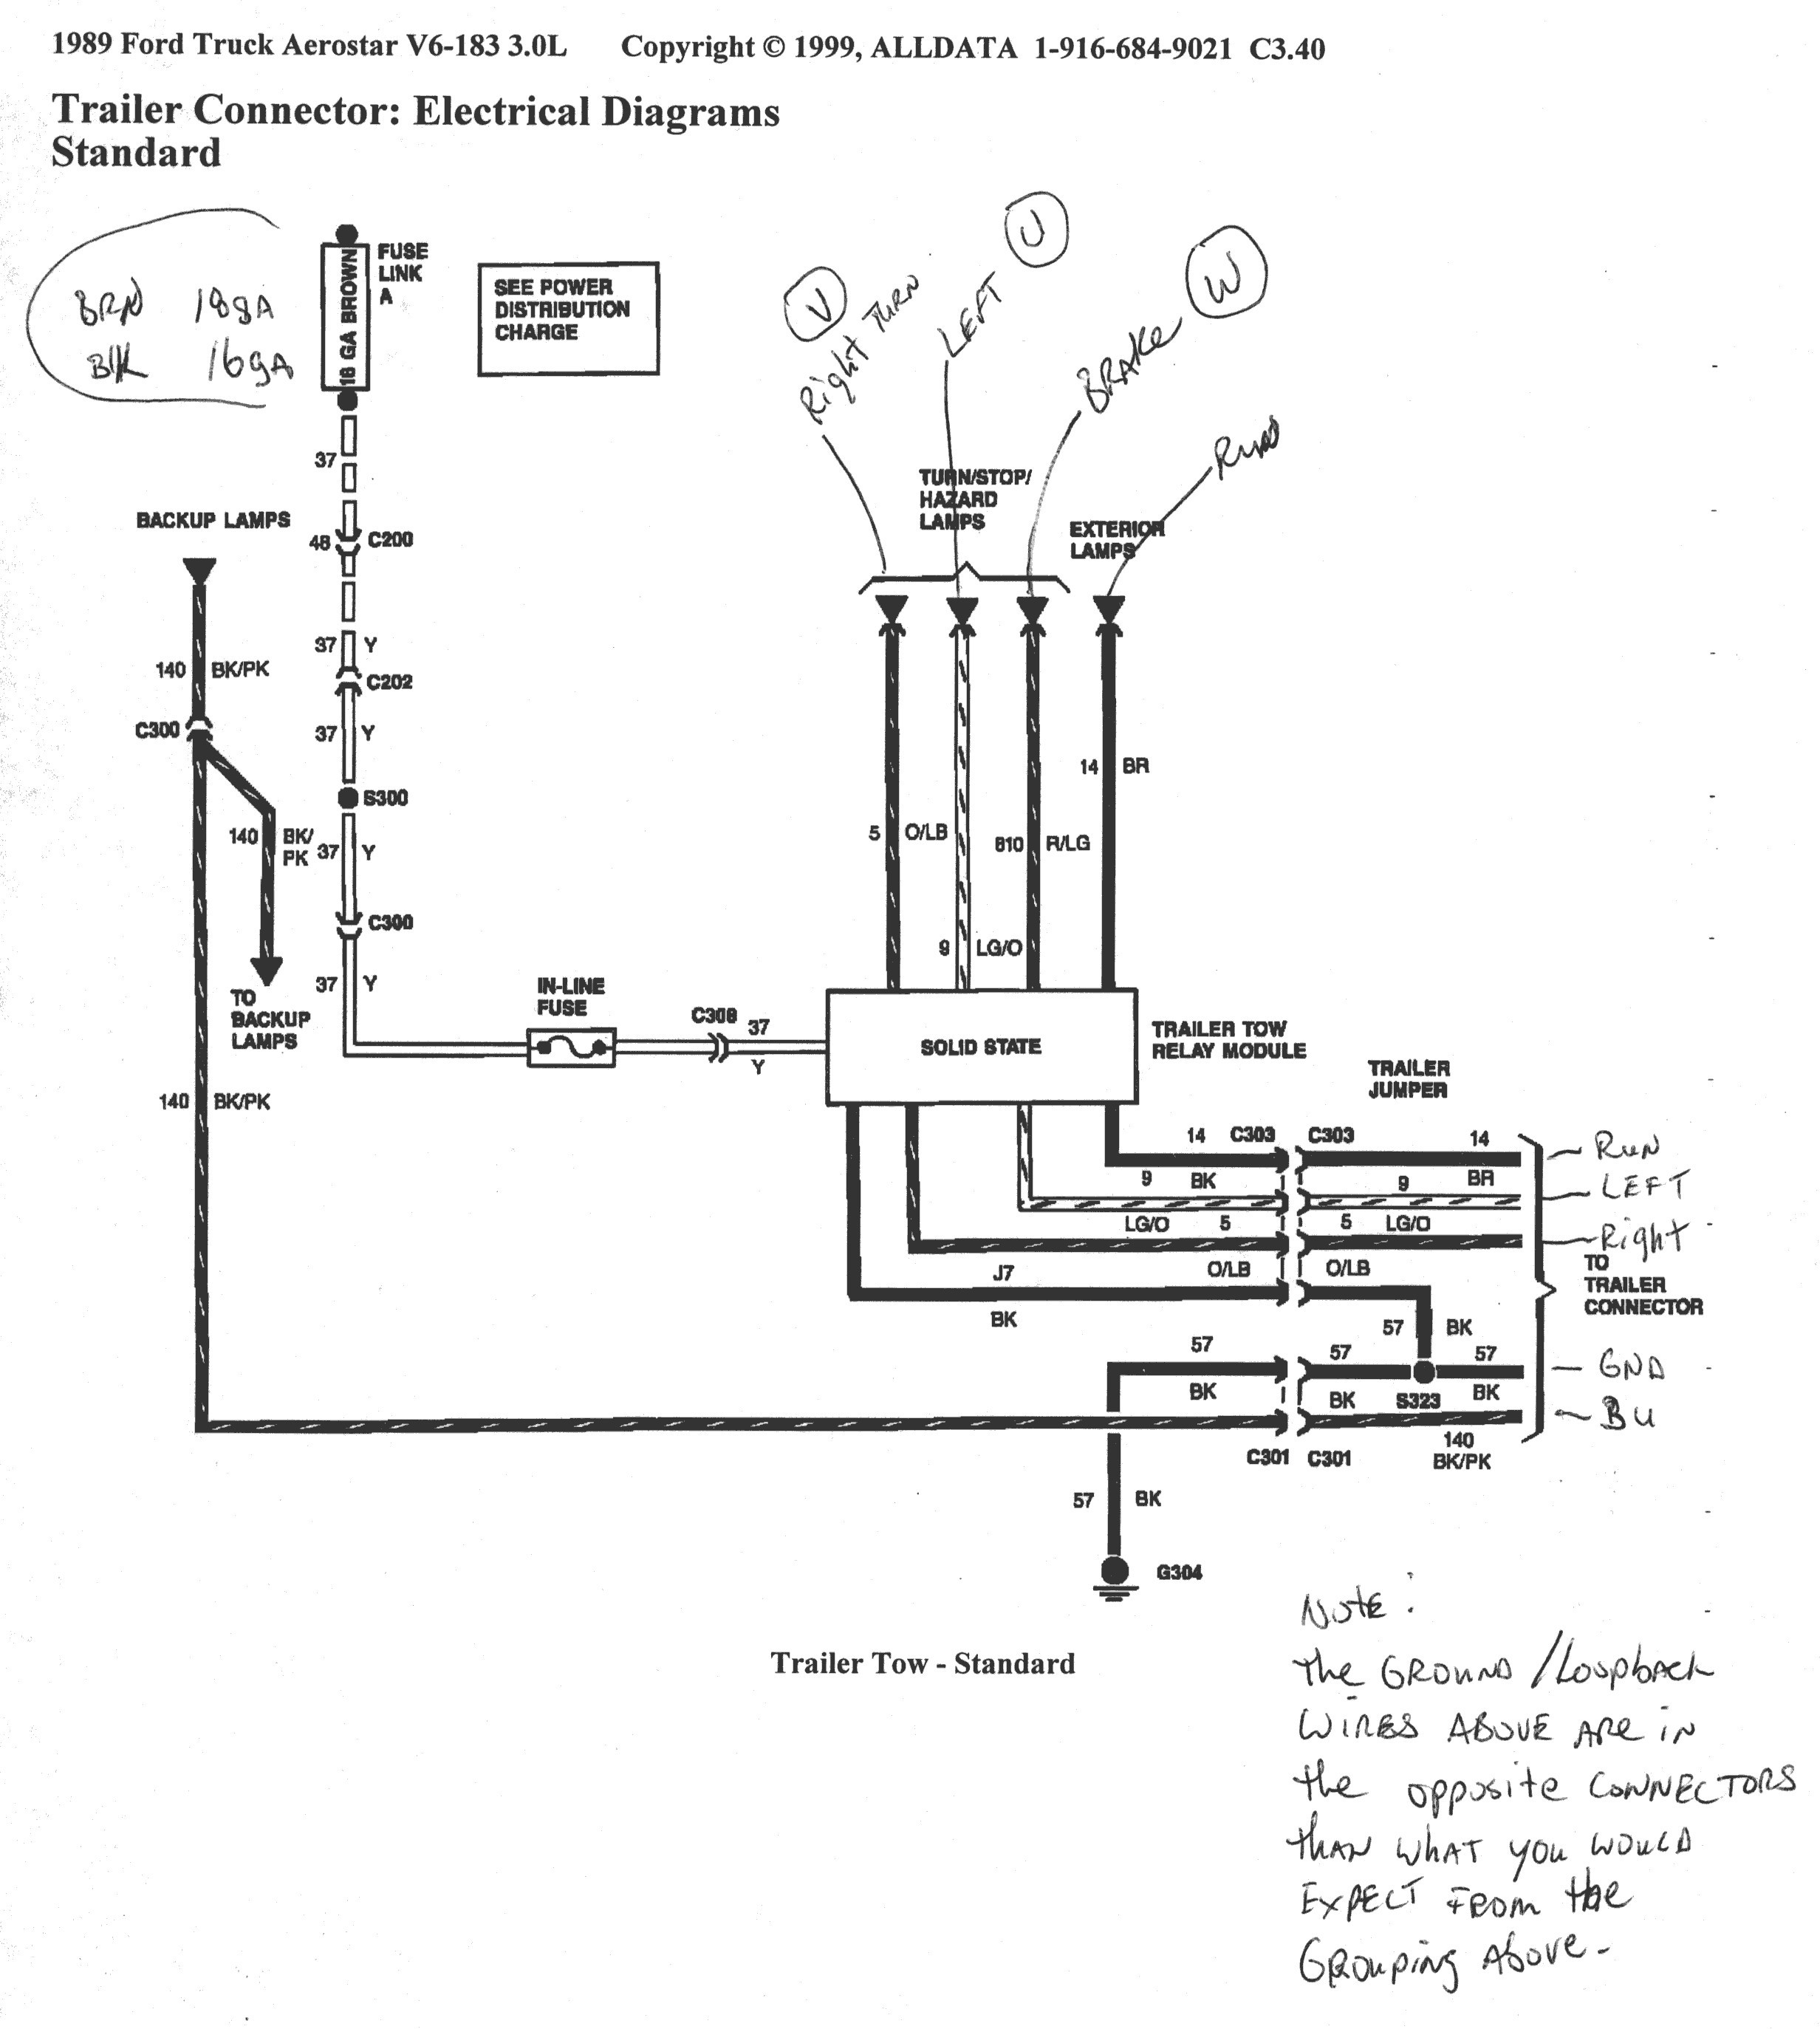 Wiring Diagram For Ford F150 Trailer Lights From Truck Simple 2000 - 2000 Ford F150 Trailer Wiring Diagram